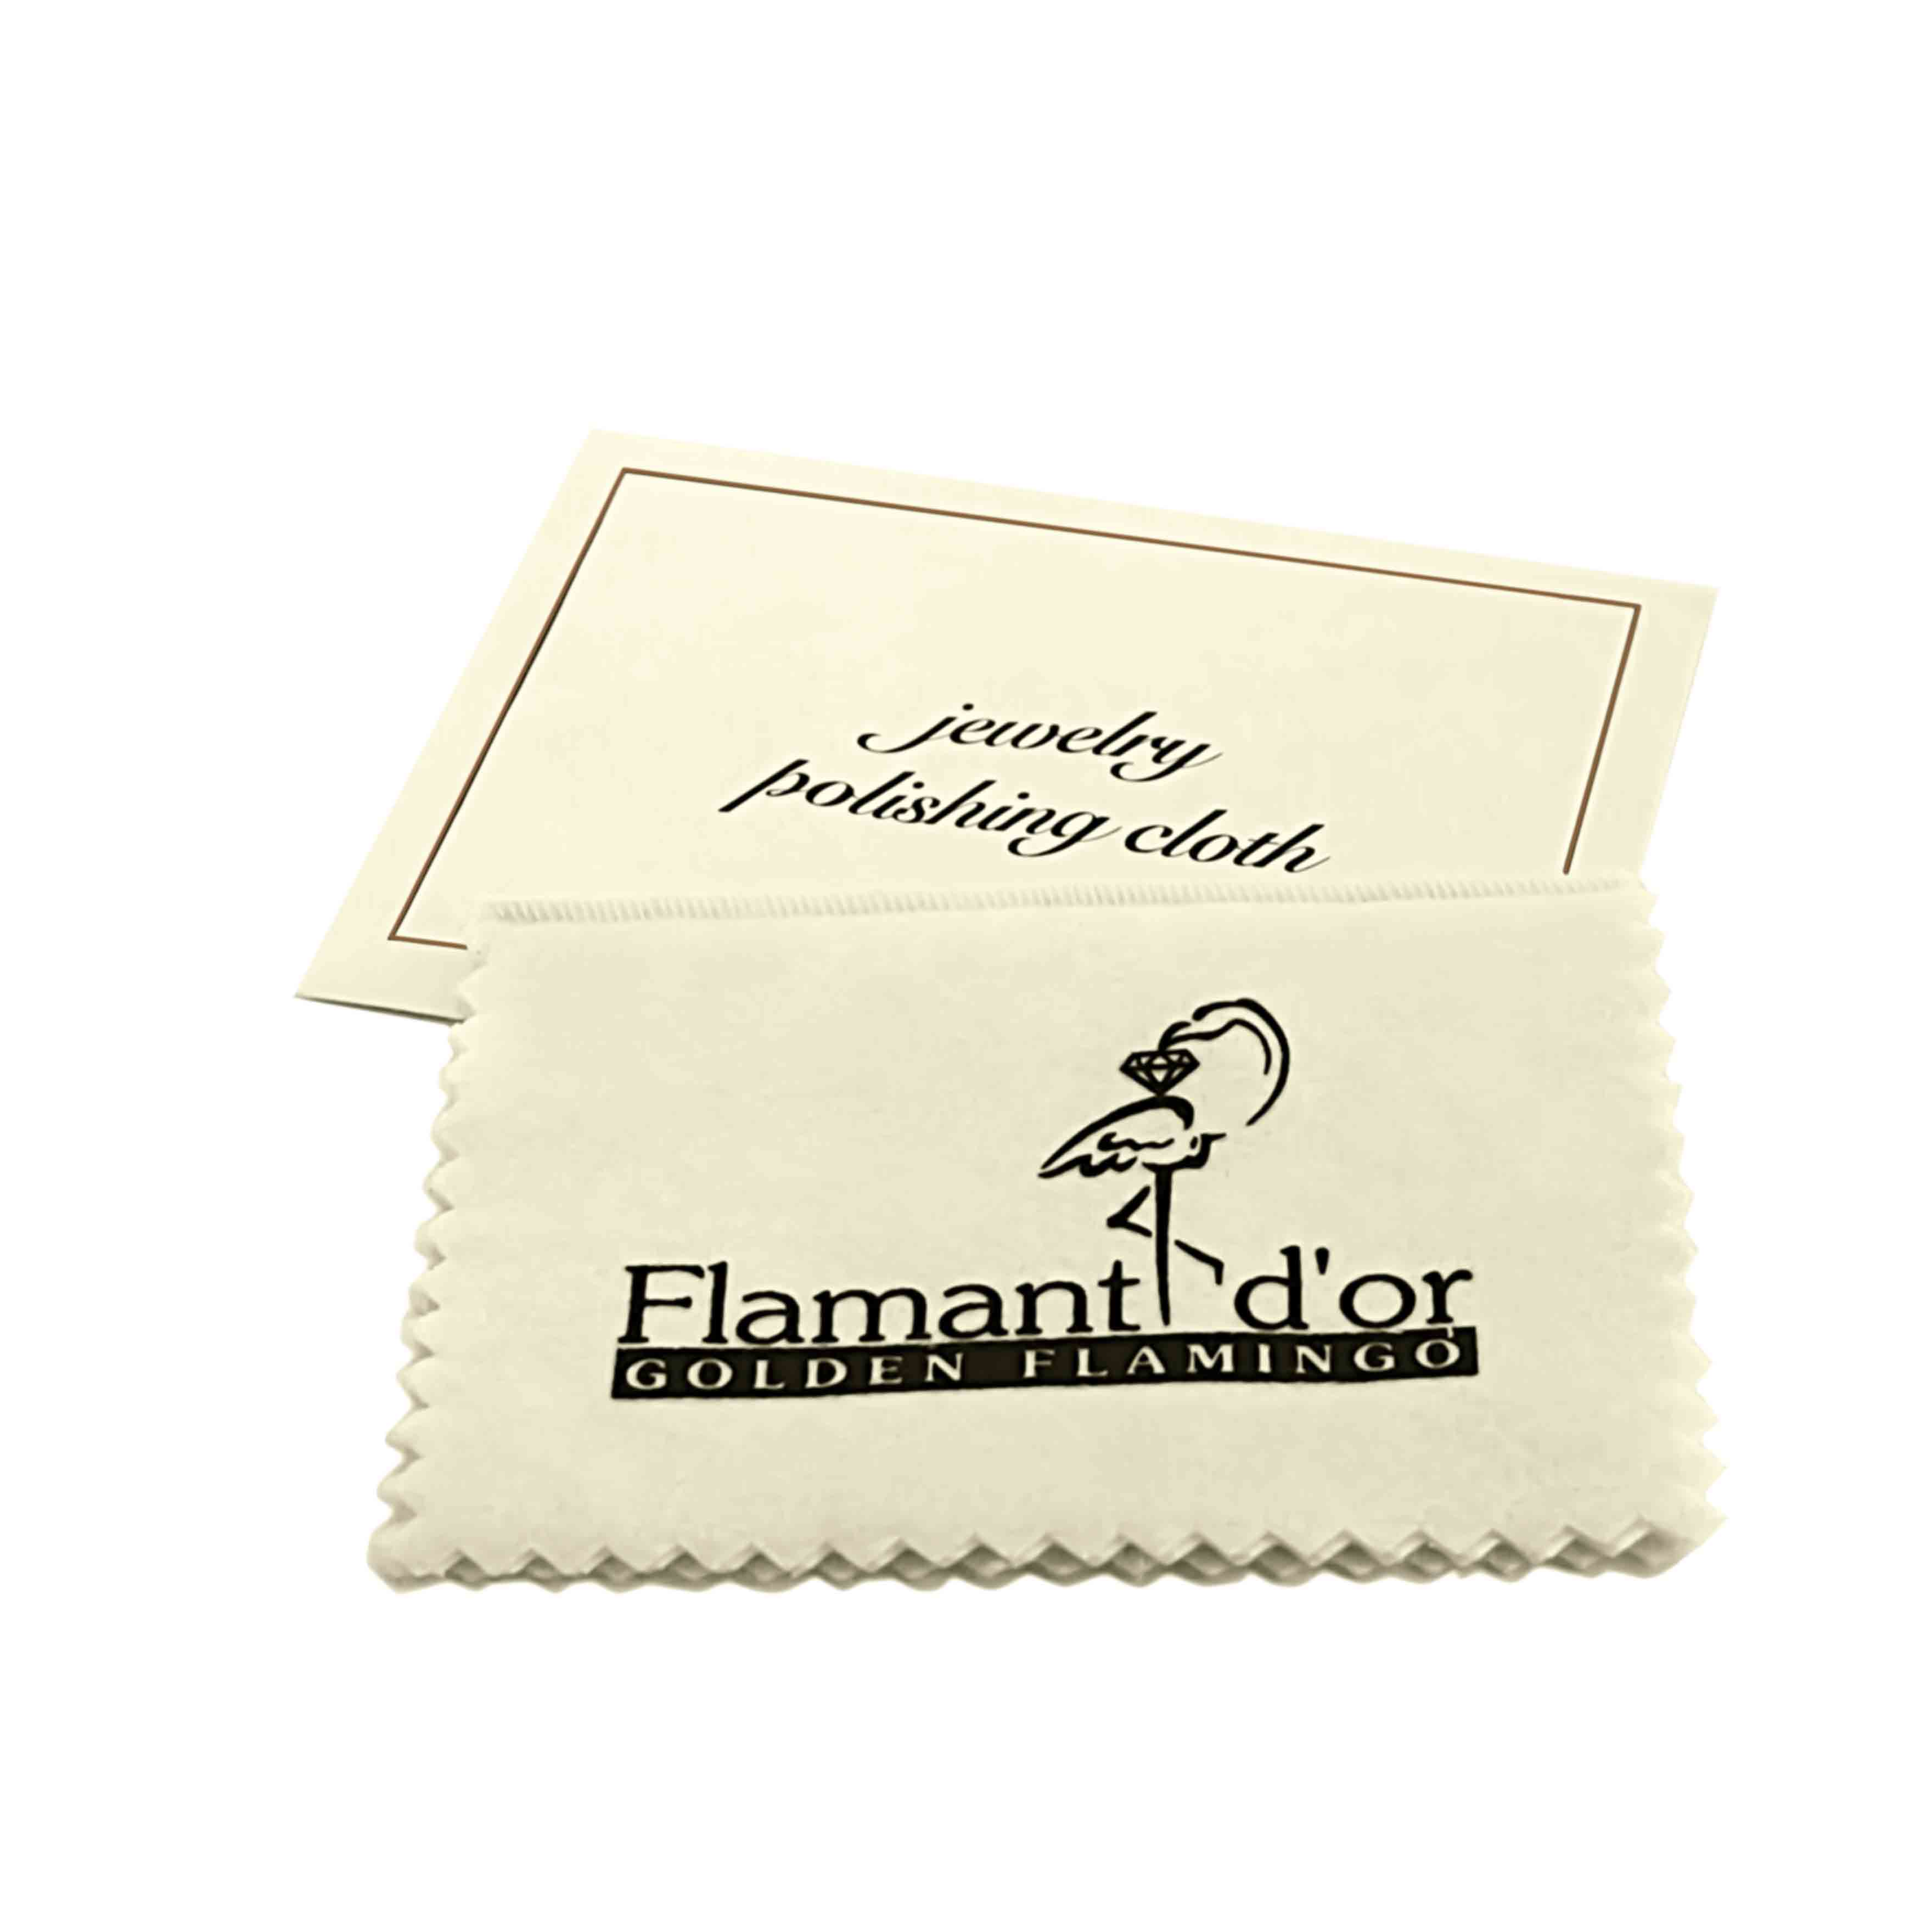 Gold and Silver Polishing Cloth with Envelope